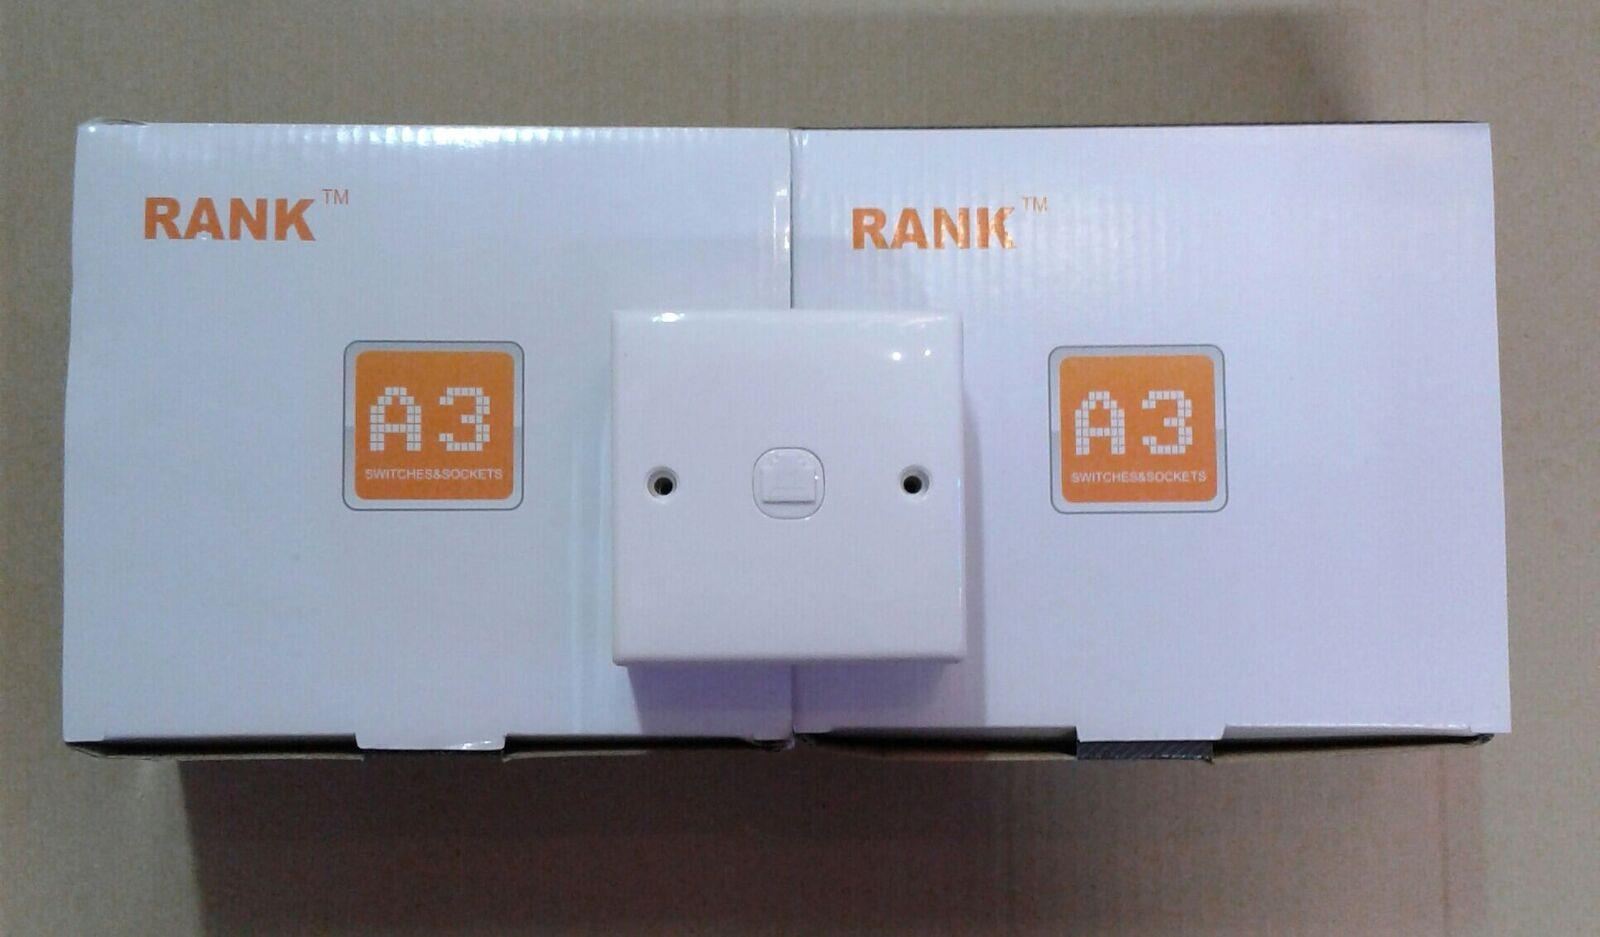 RANK A3 1 GANG RJ45 COMPUTER SOCKET CAT5E